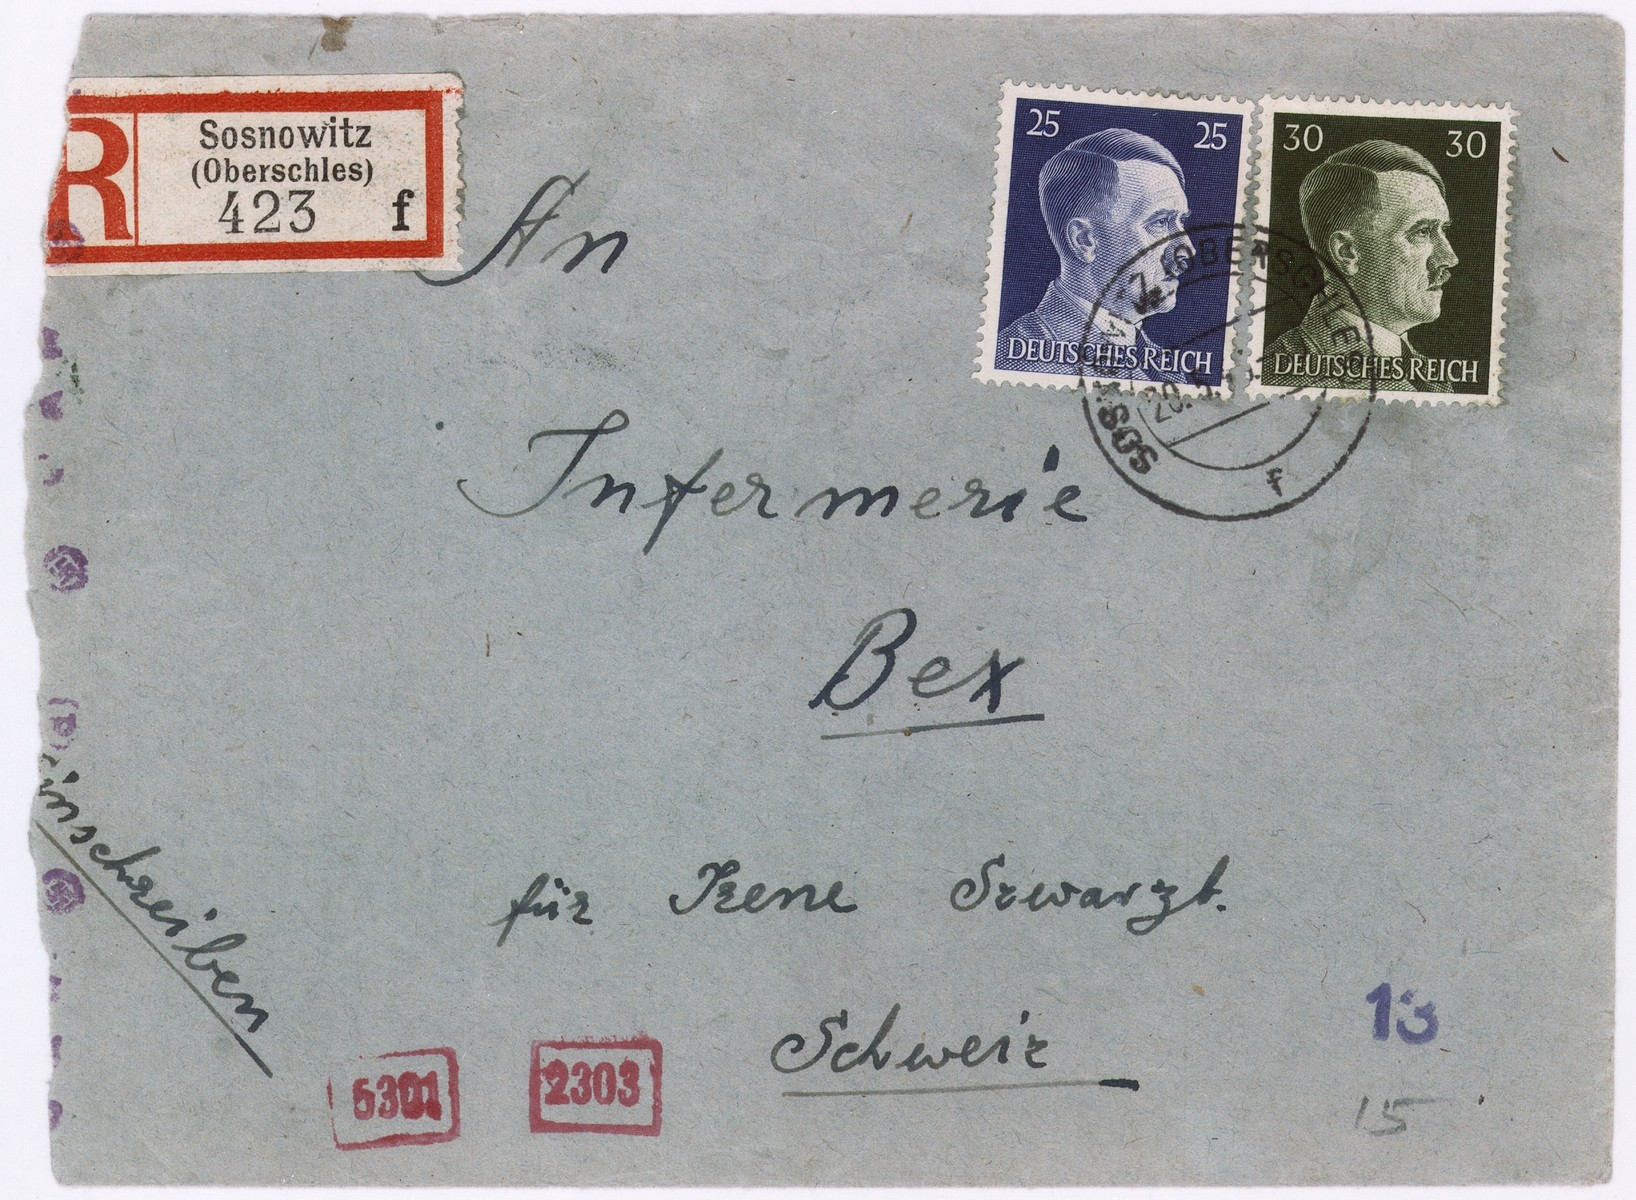 An envelope of a registered letter sent from  Sosnowiec  by A. Sztatler to Irene Schwartzbaum in Bax, Switzerland.  The return address of the sender or senders states: tailors workshop, Bedzin, Alte Haupstrasse 45.